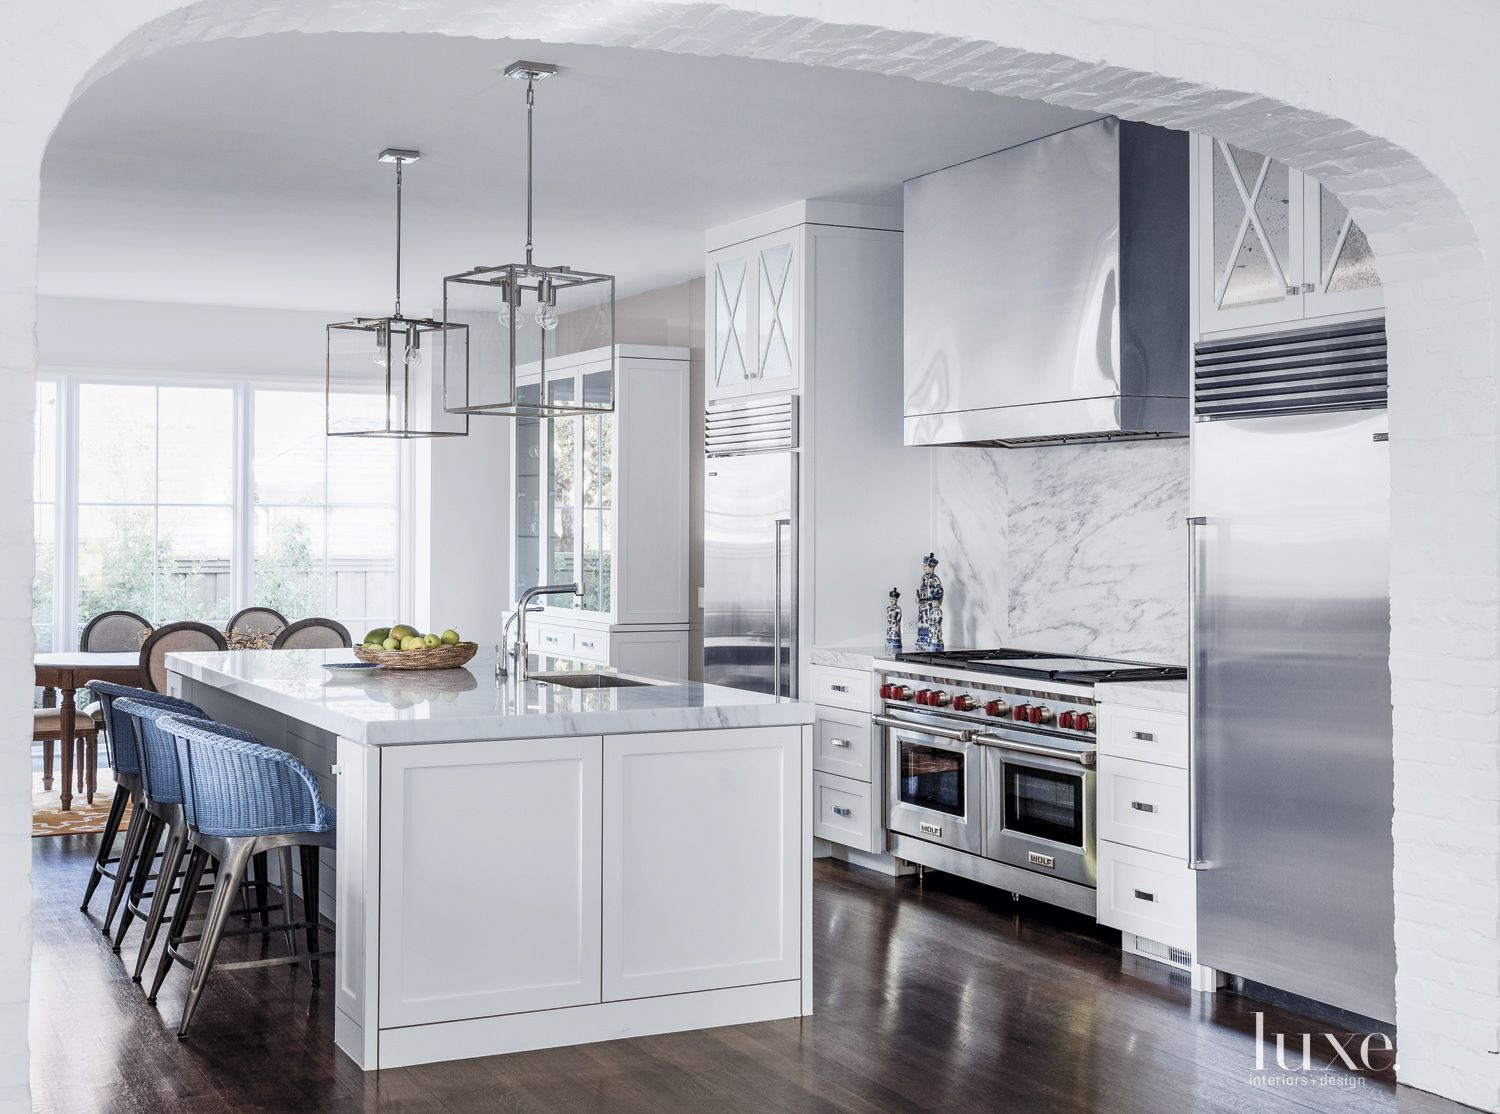 Transitional White Kitchen with Shaker-Style Cabinetry